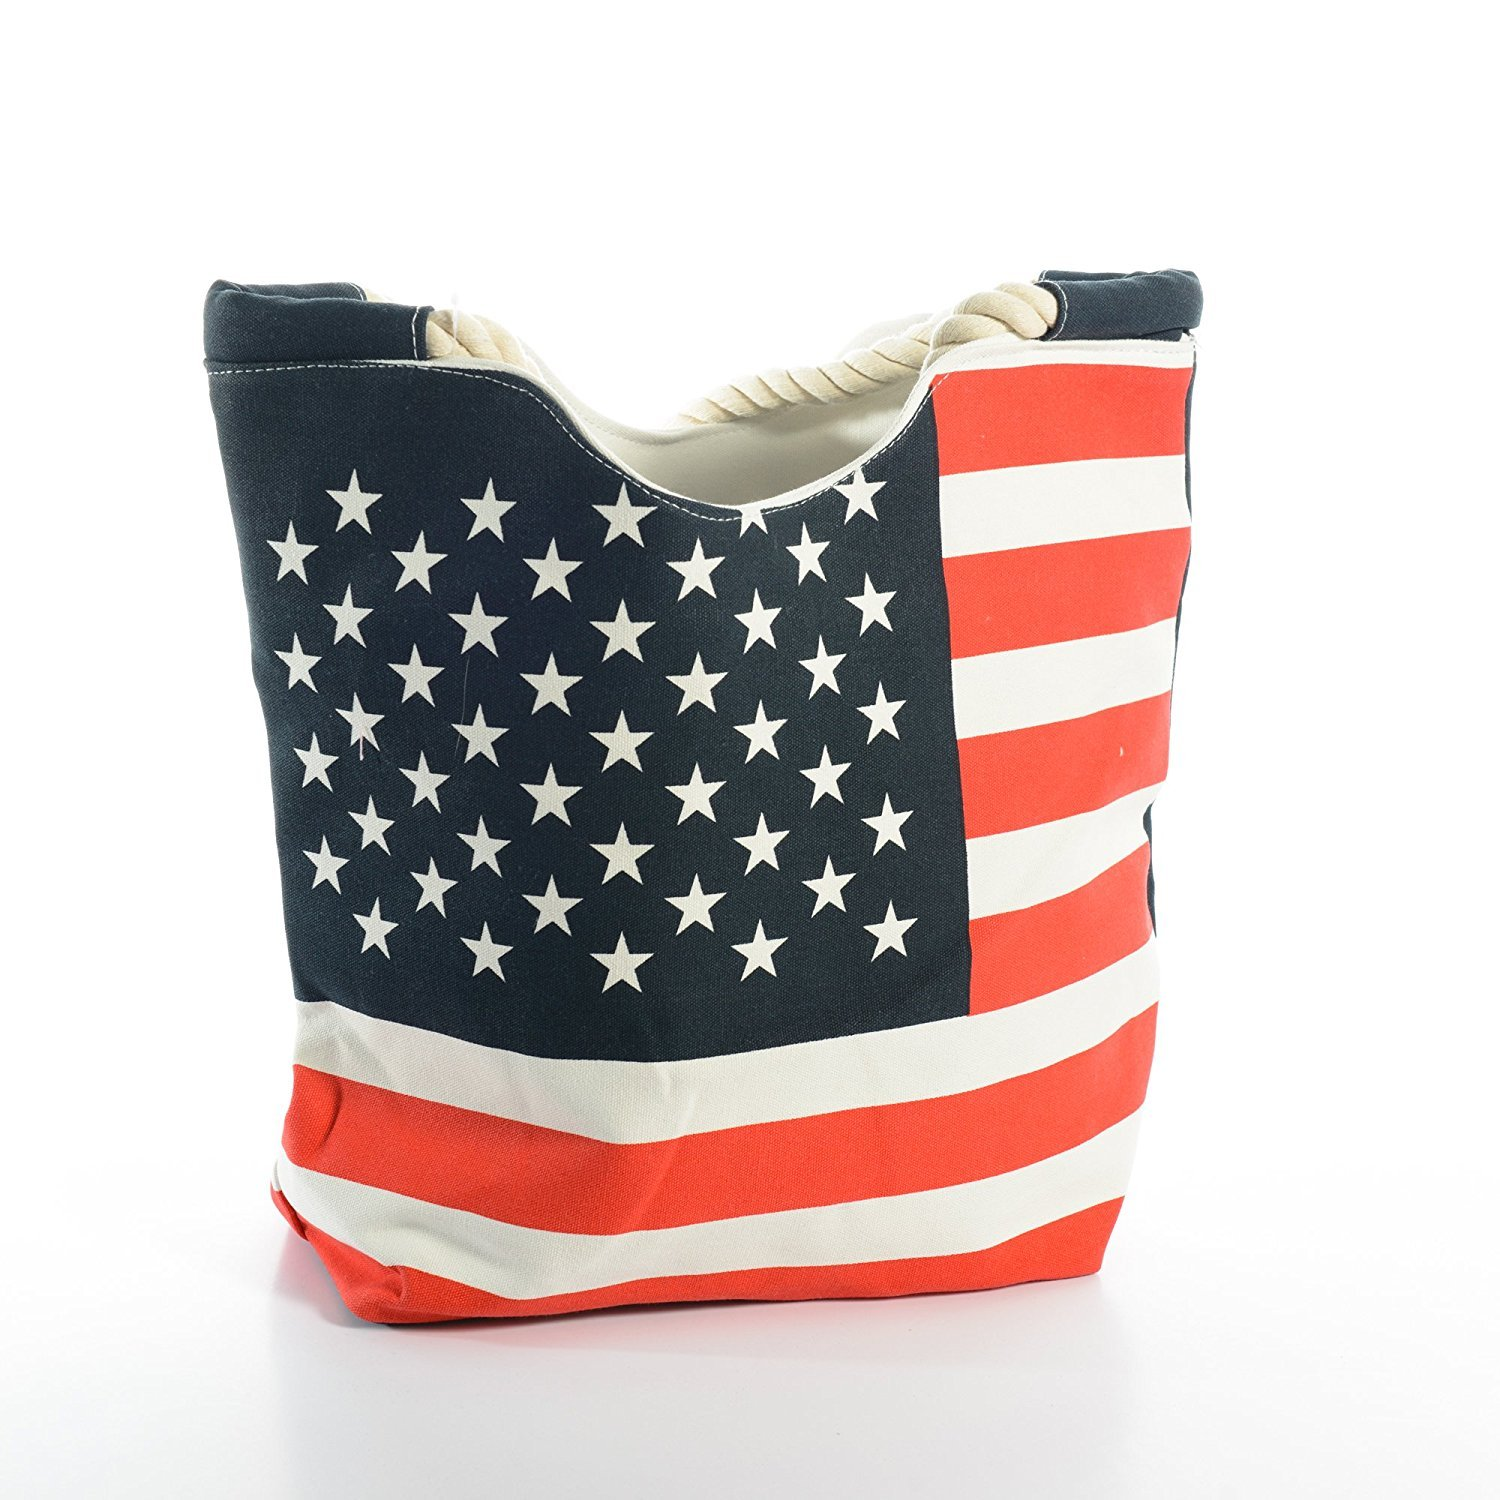 High Quality USA Flag Women Canvas Tote Bag Large, by Lynnwang Design